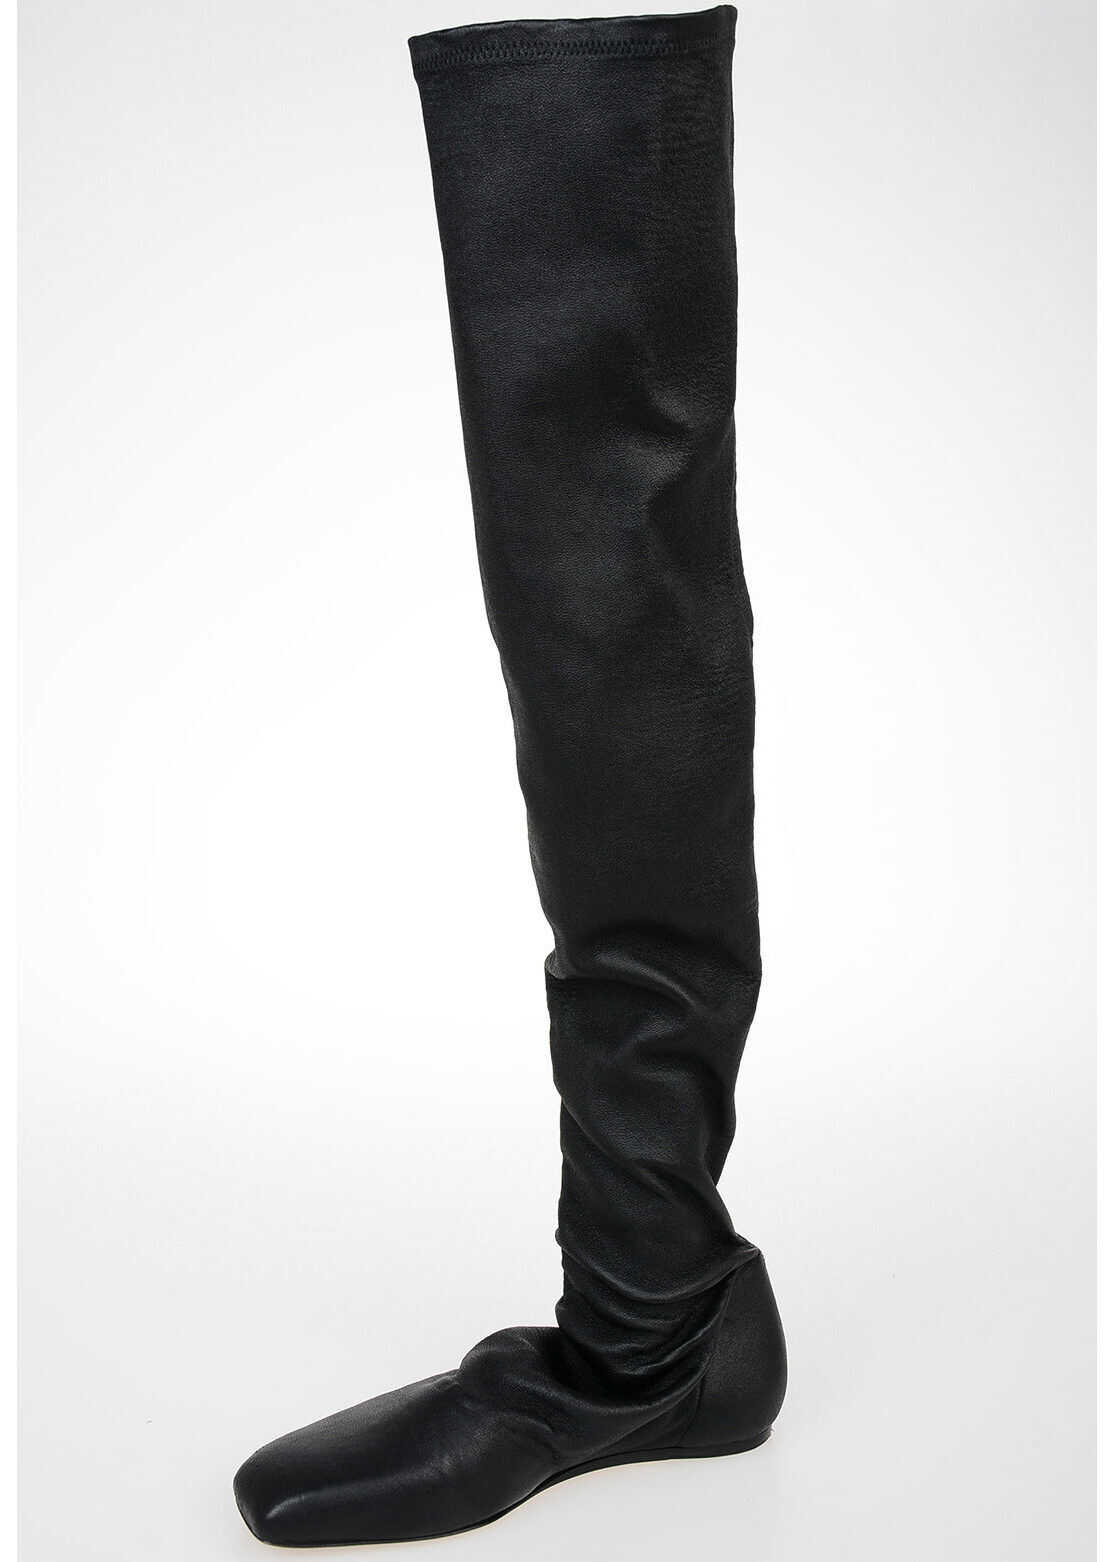 Rick Owens Leather STOCKING Boots BLACK